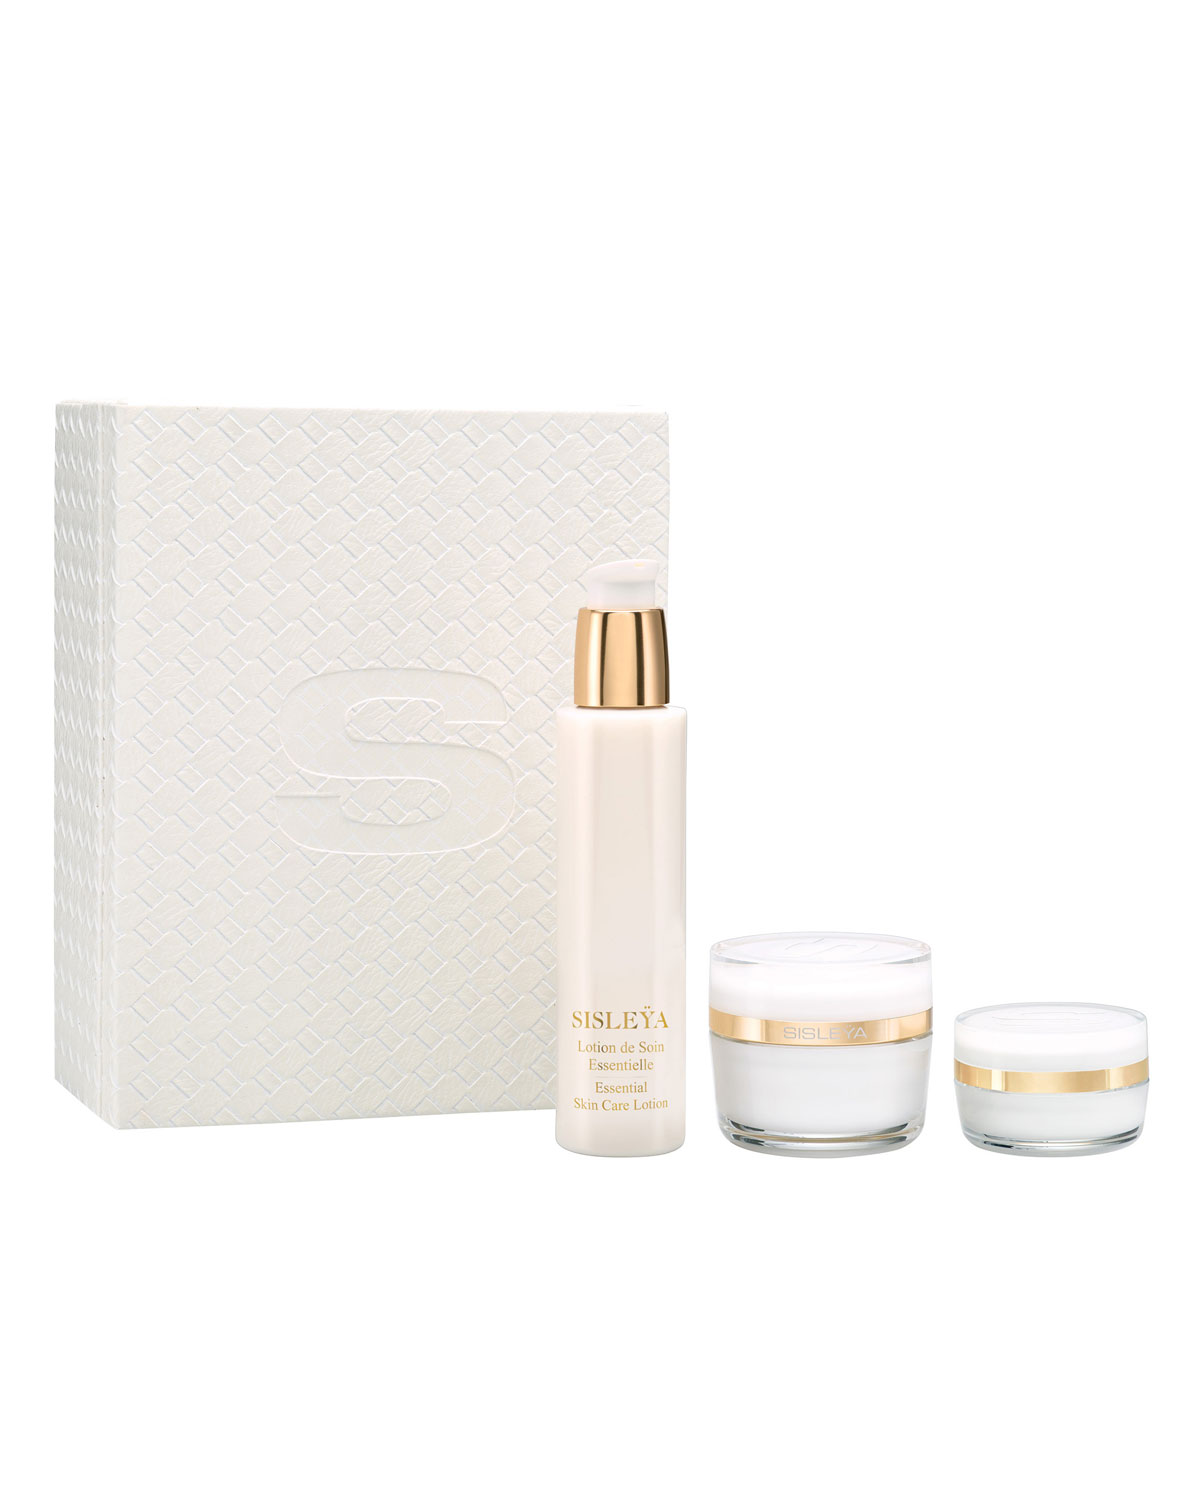 Sisley Paris SISLE & #255A PRESTIGE COFFRET ($920 VALUE)